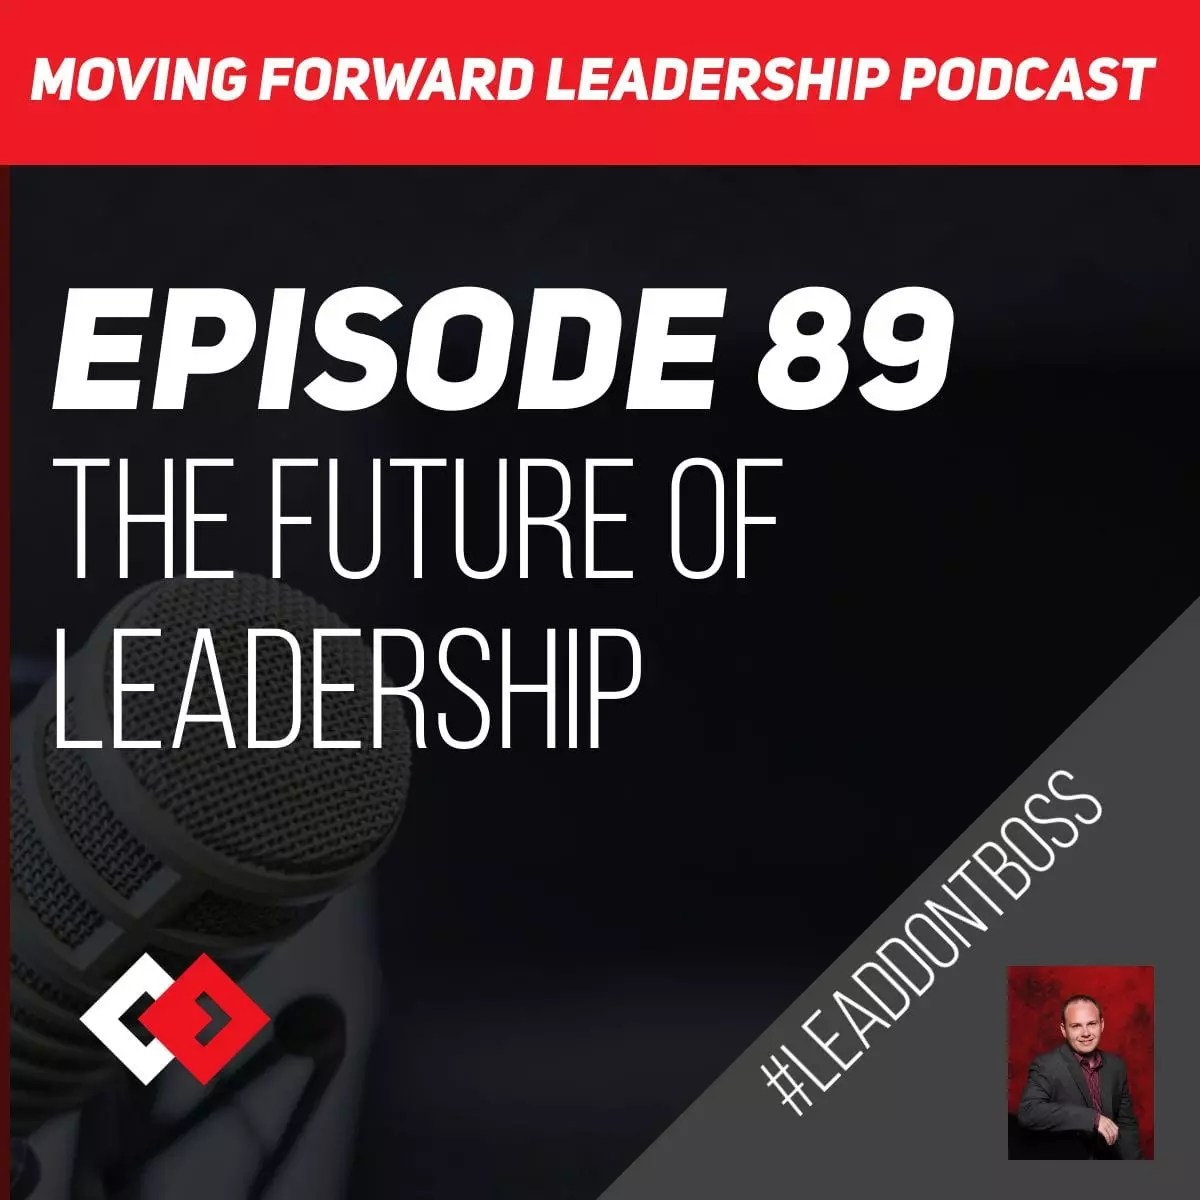 The Future of Leadership | Episode 89